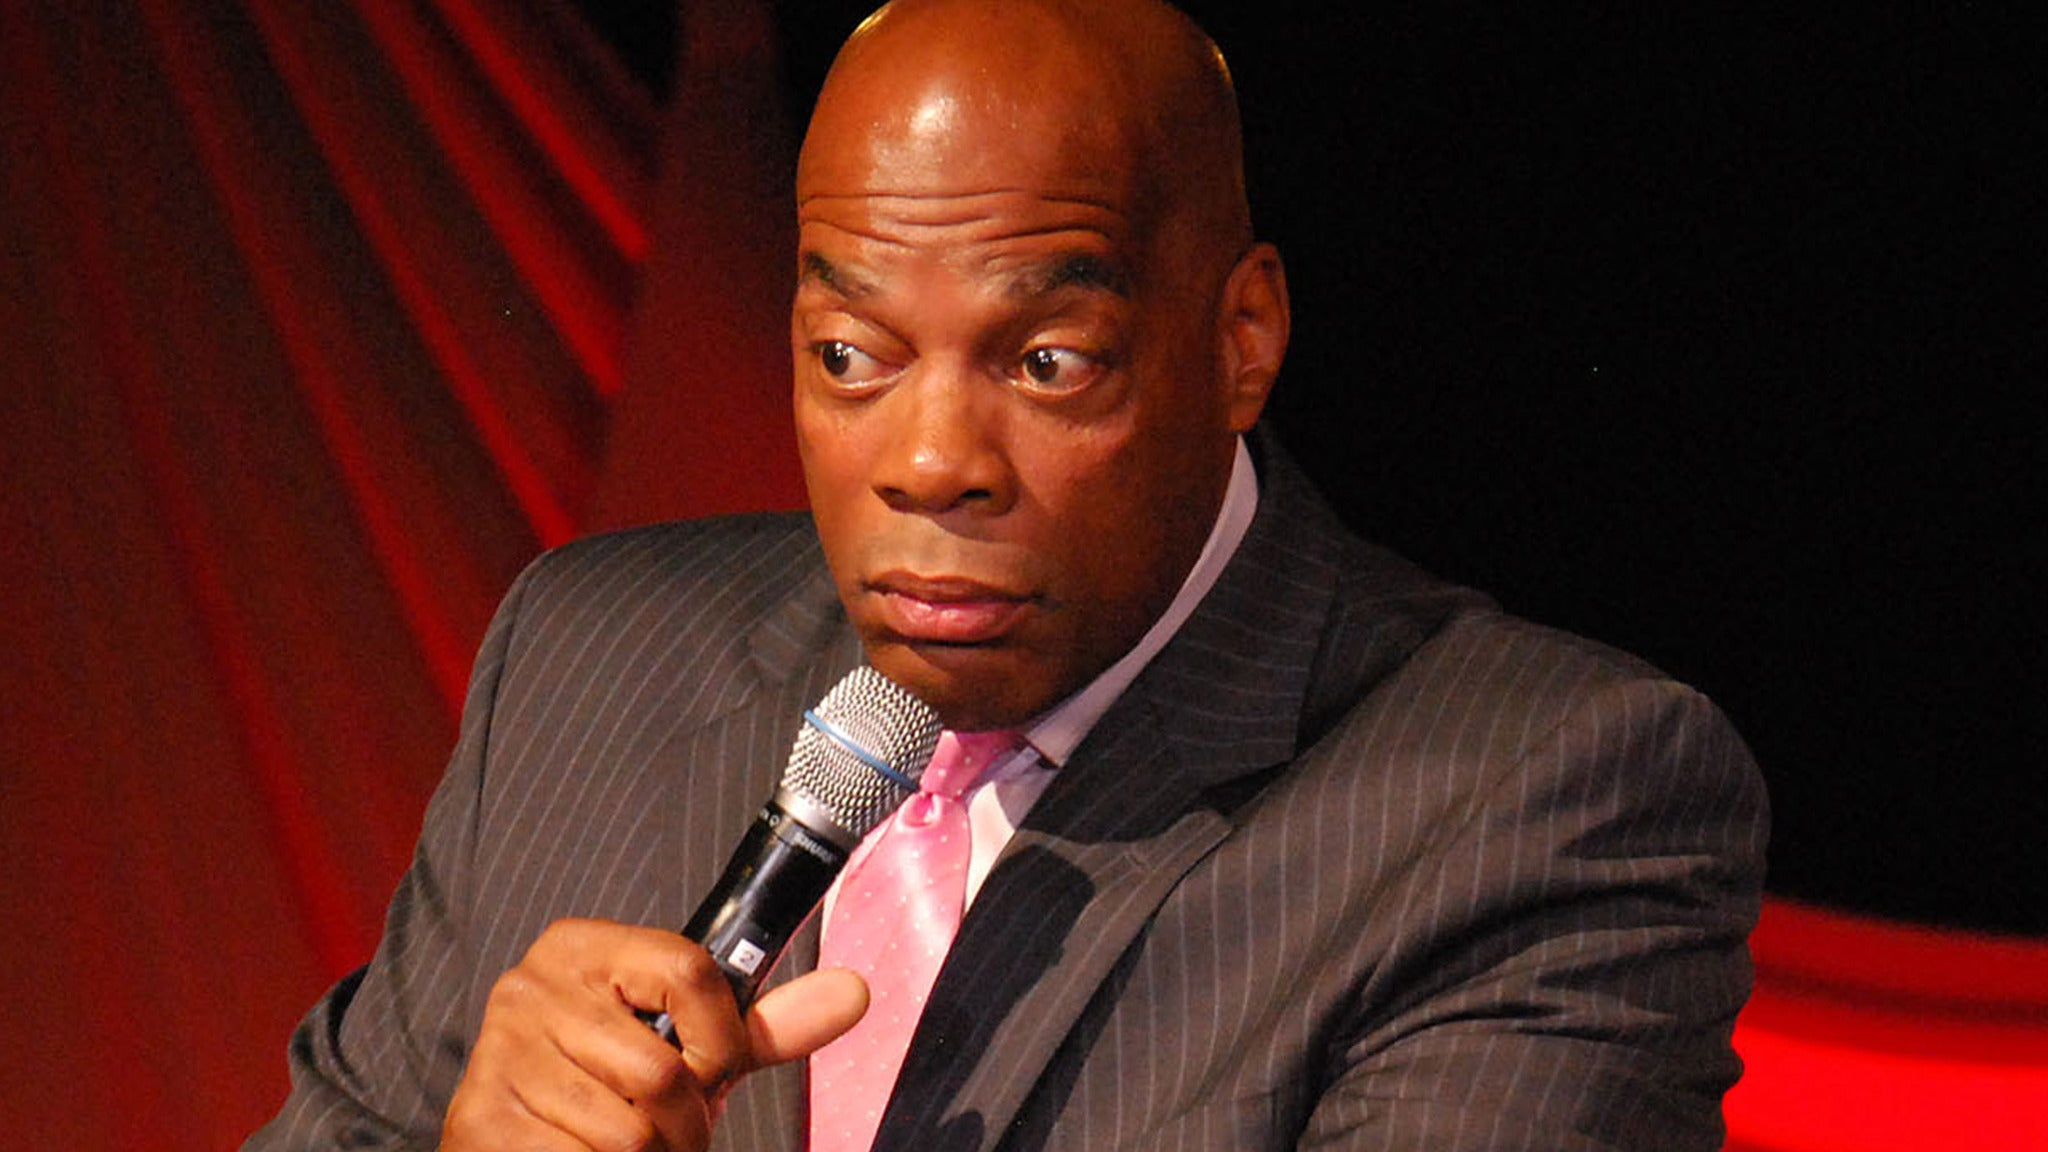 Alonzo Bodden at Brea Improv